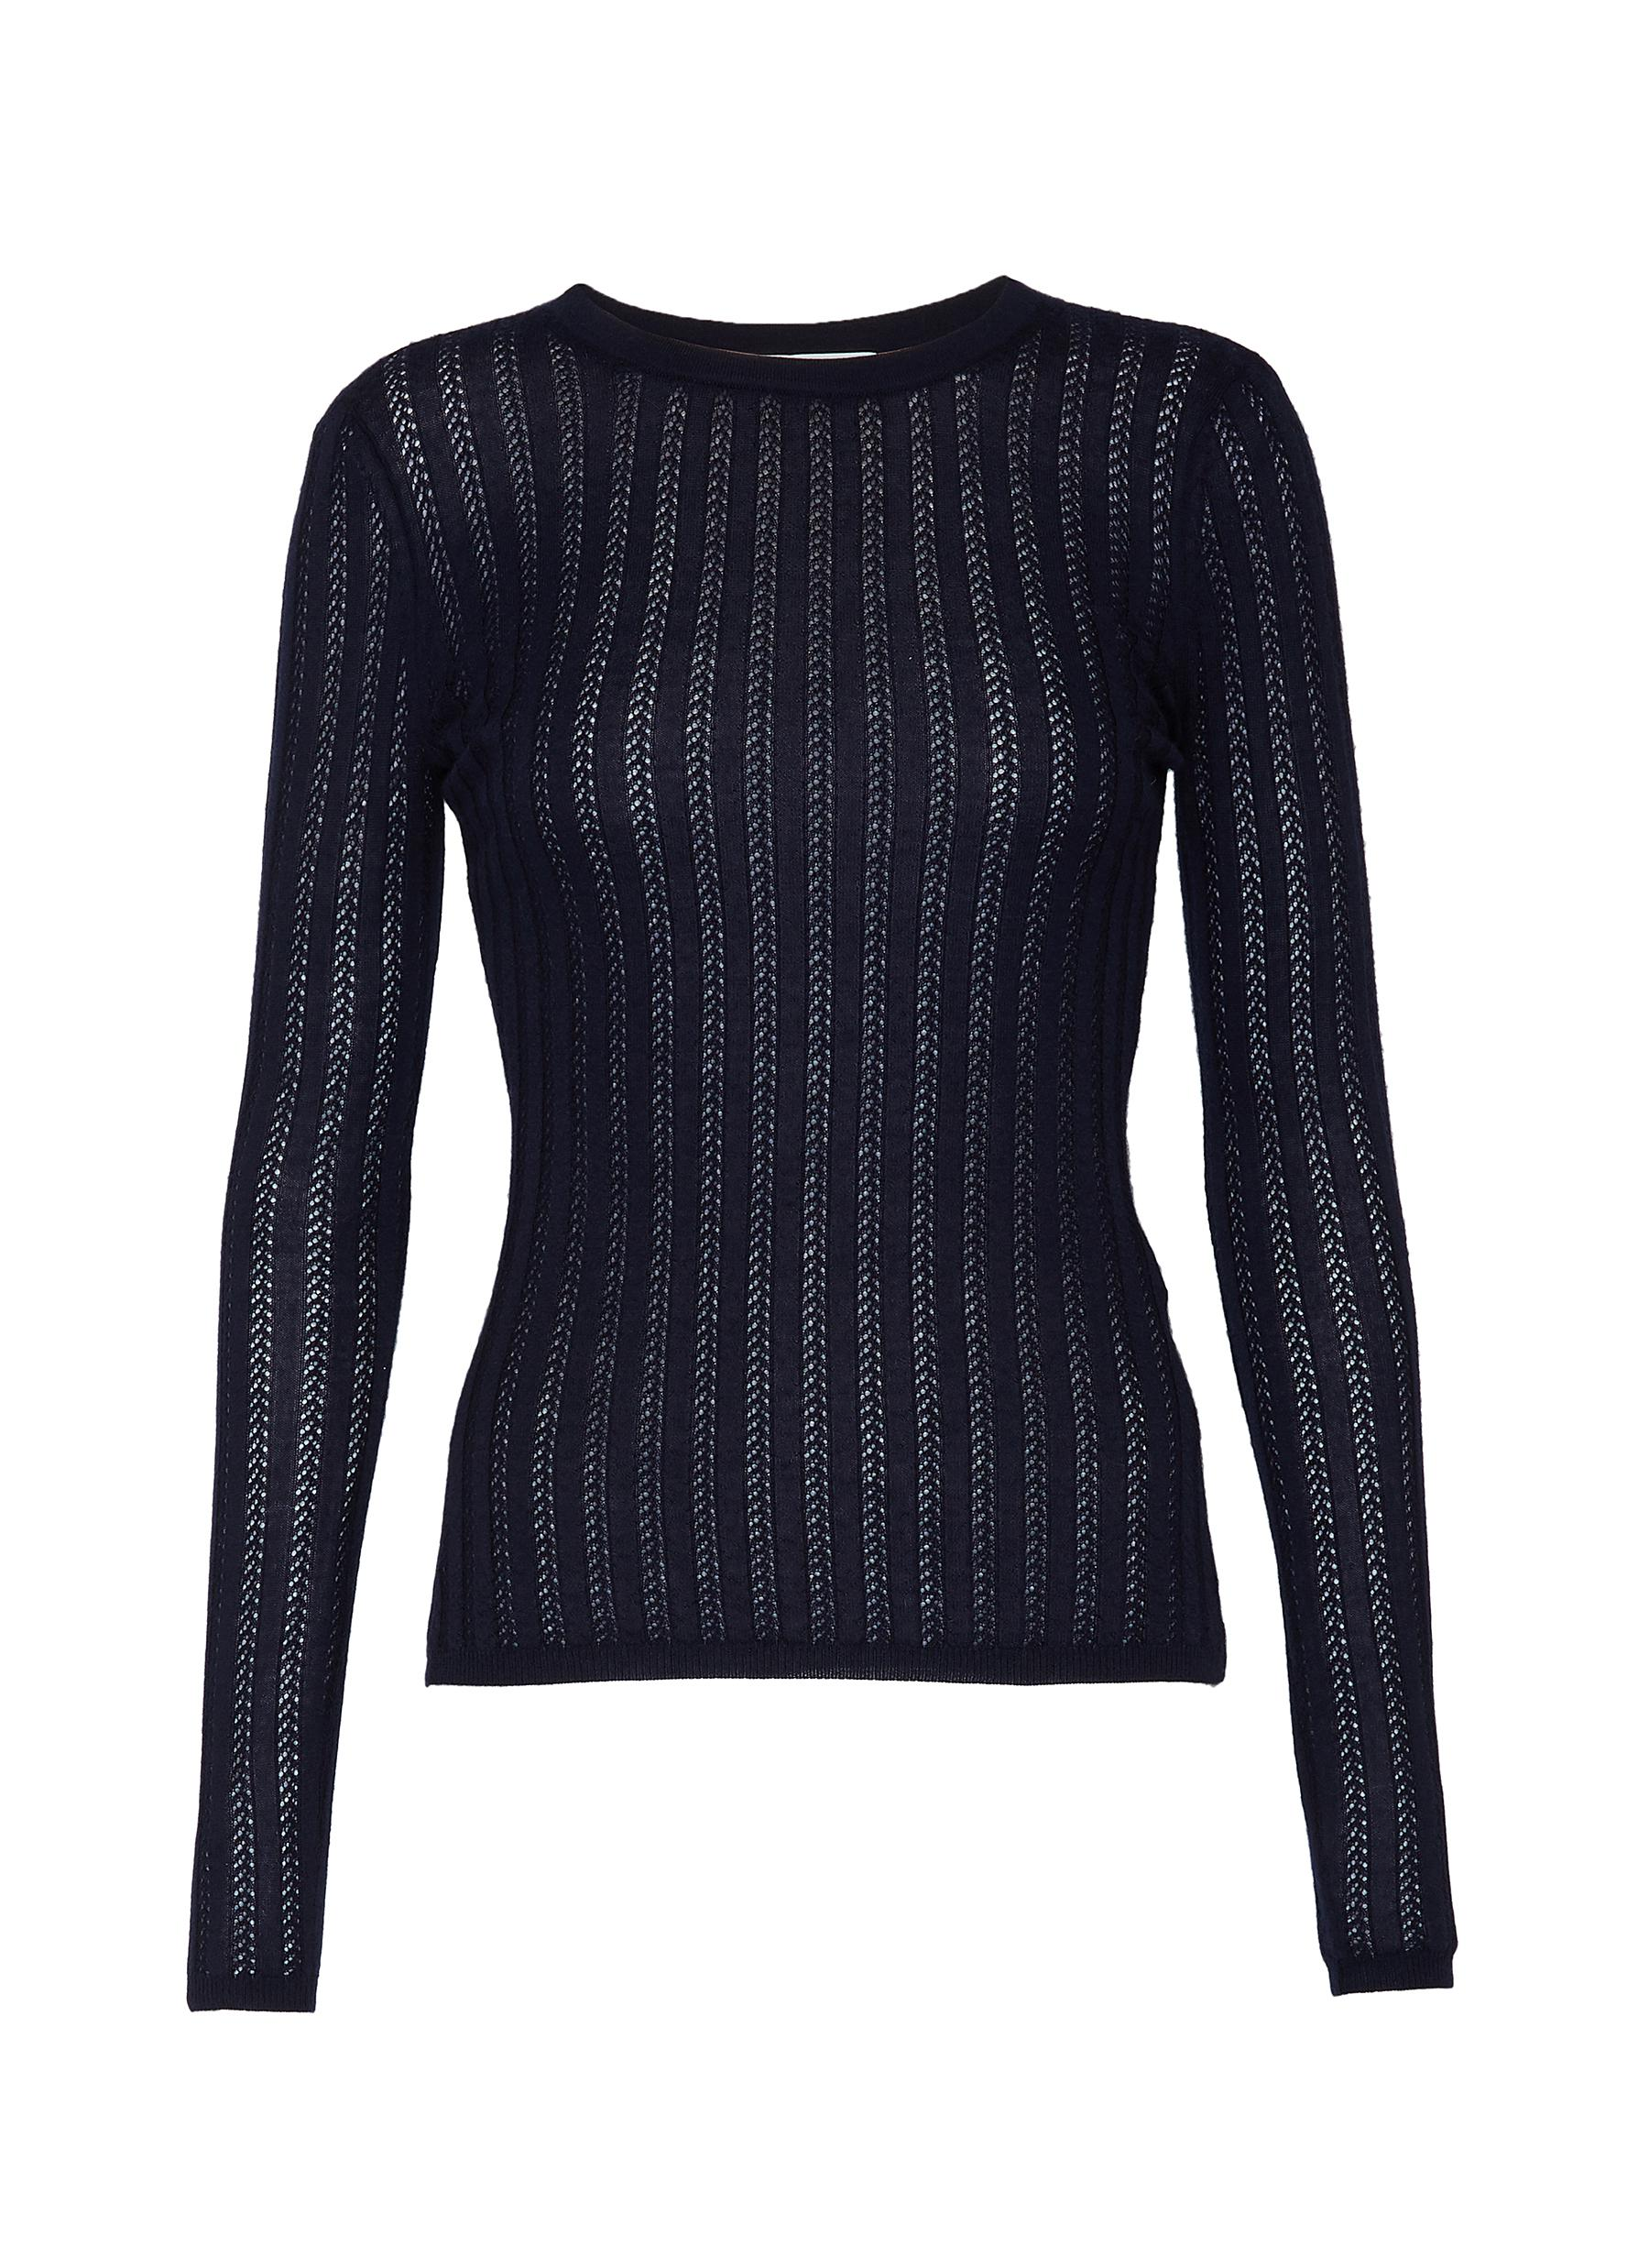 Buy Gabriela Hearst Knitwear 'Collins' cashmere-silk blend rib knit top